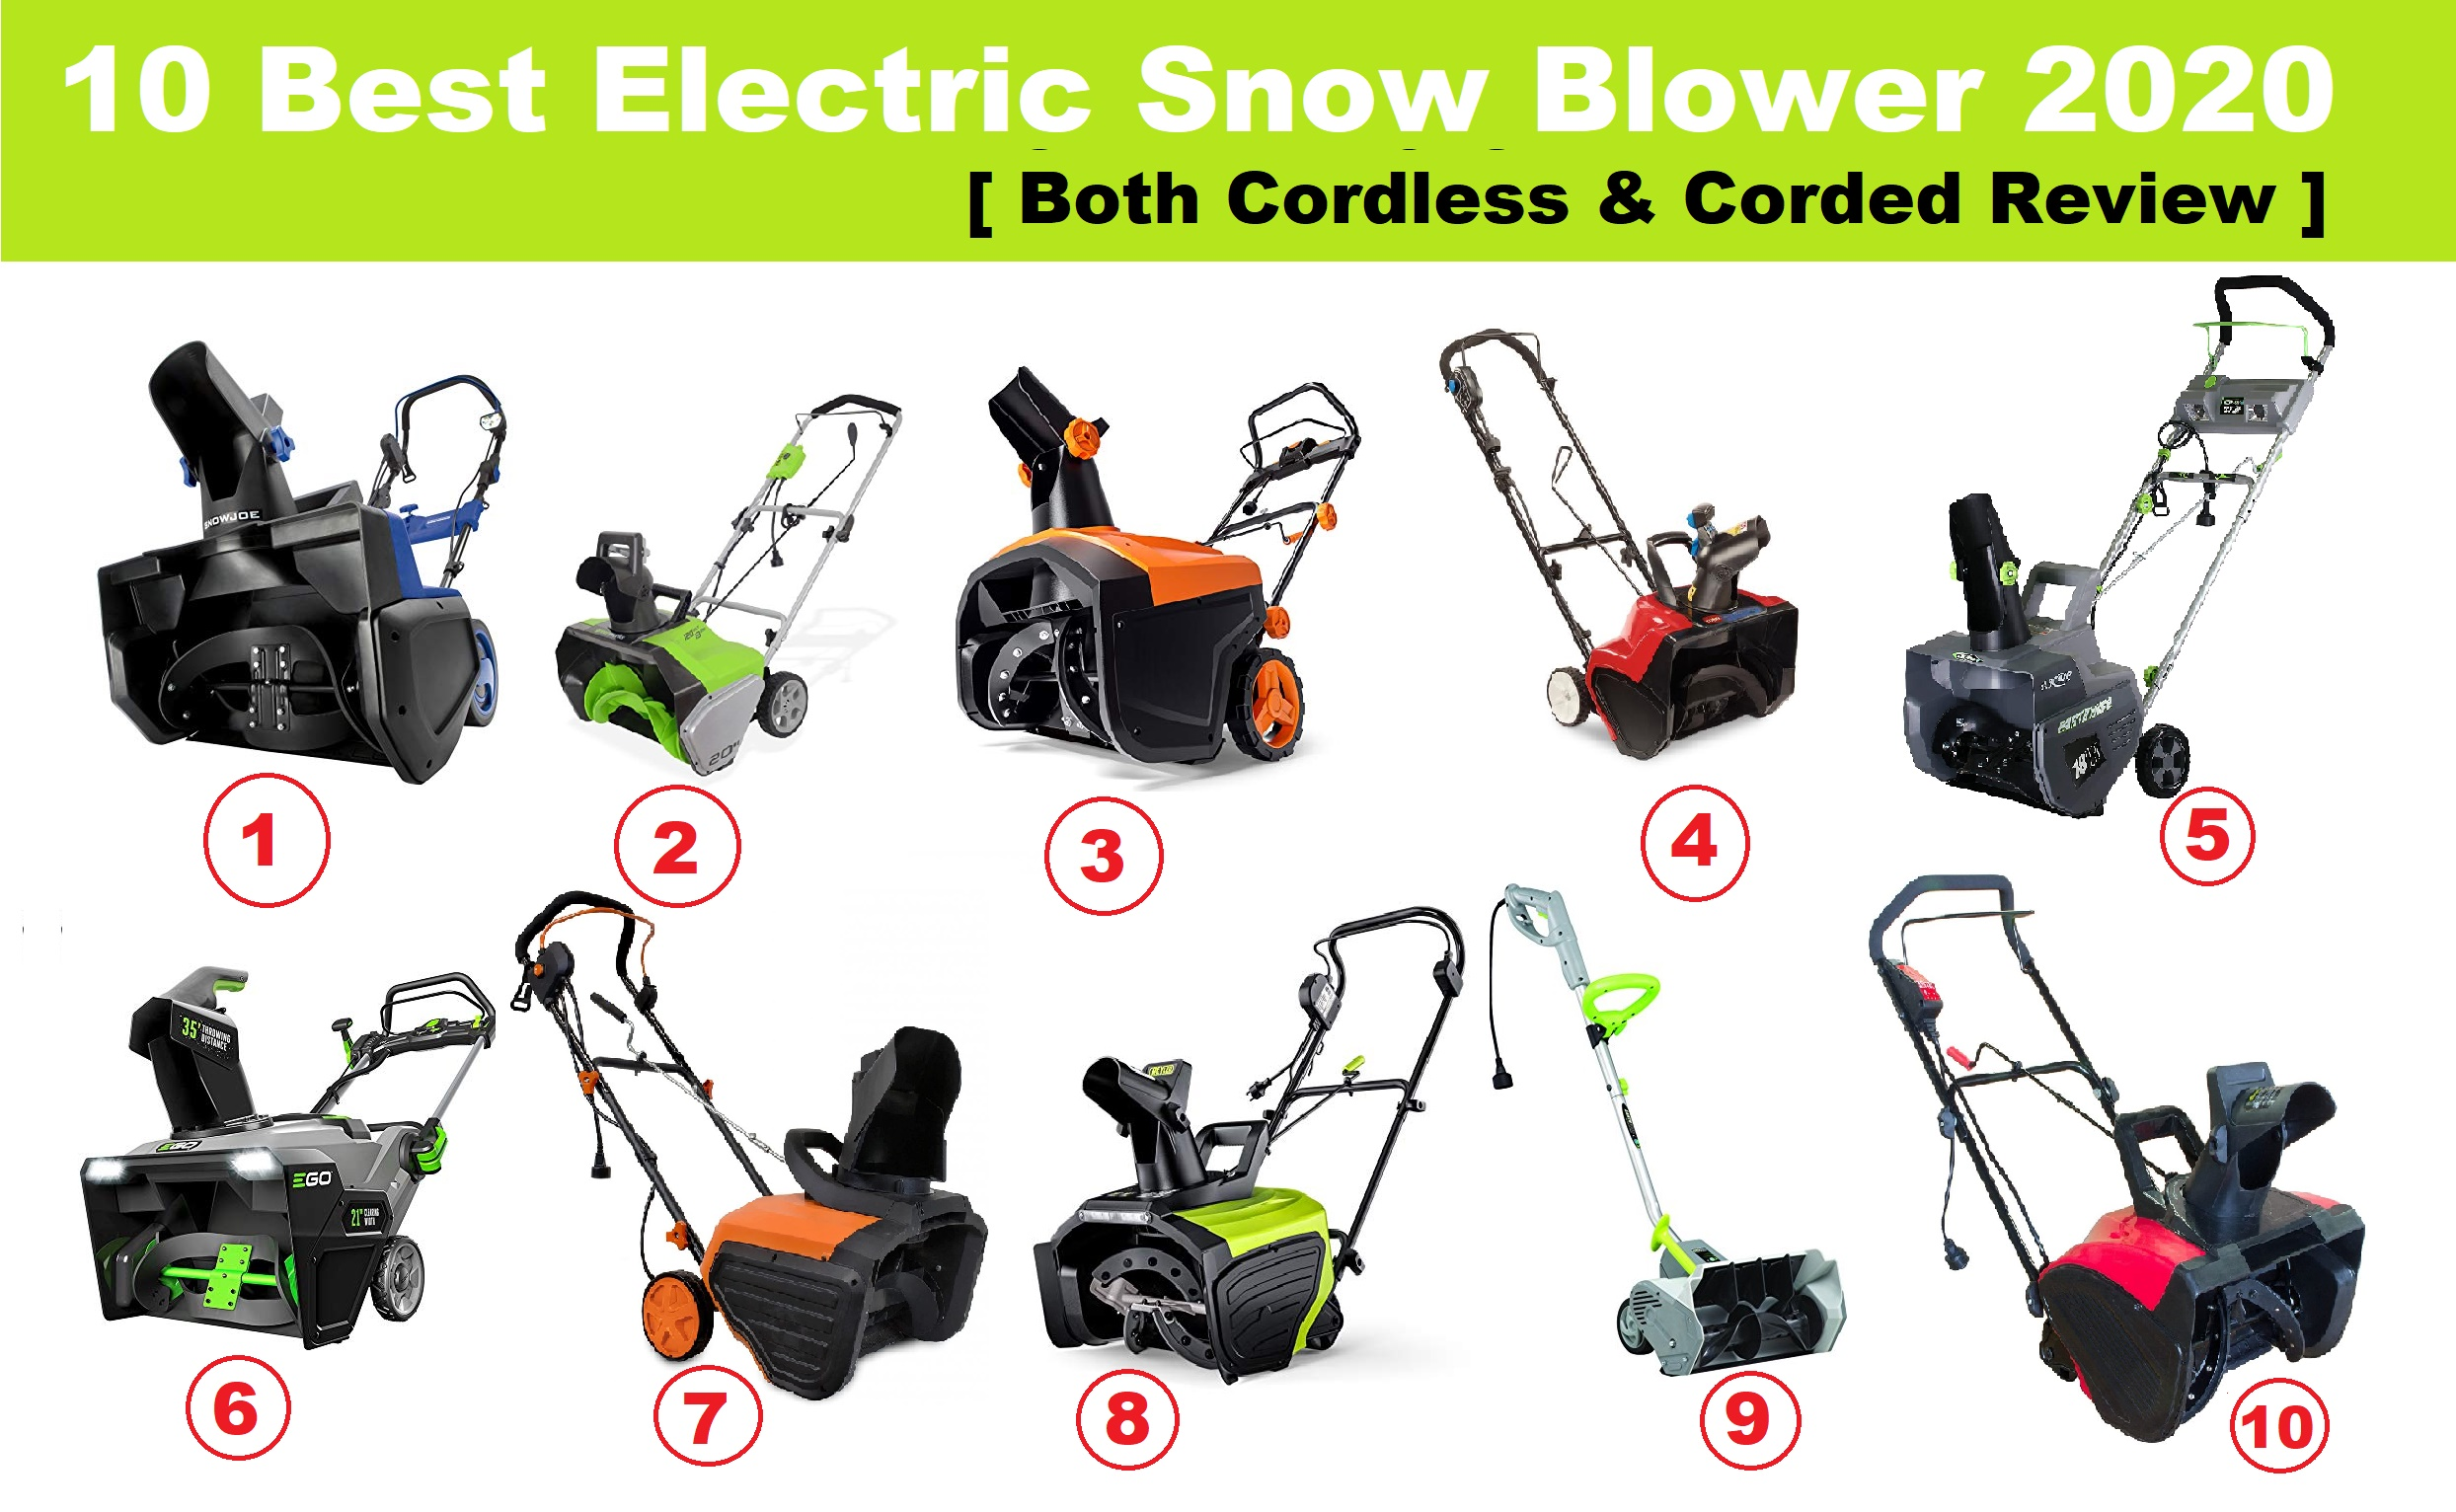 10 Best Electric Snow Blower 2021 Cordless & Corded Reviewed Compared